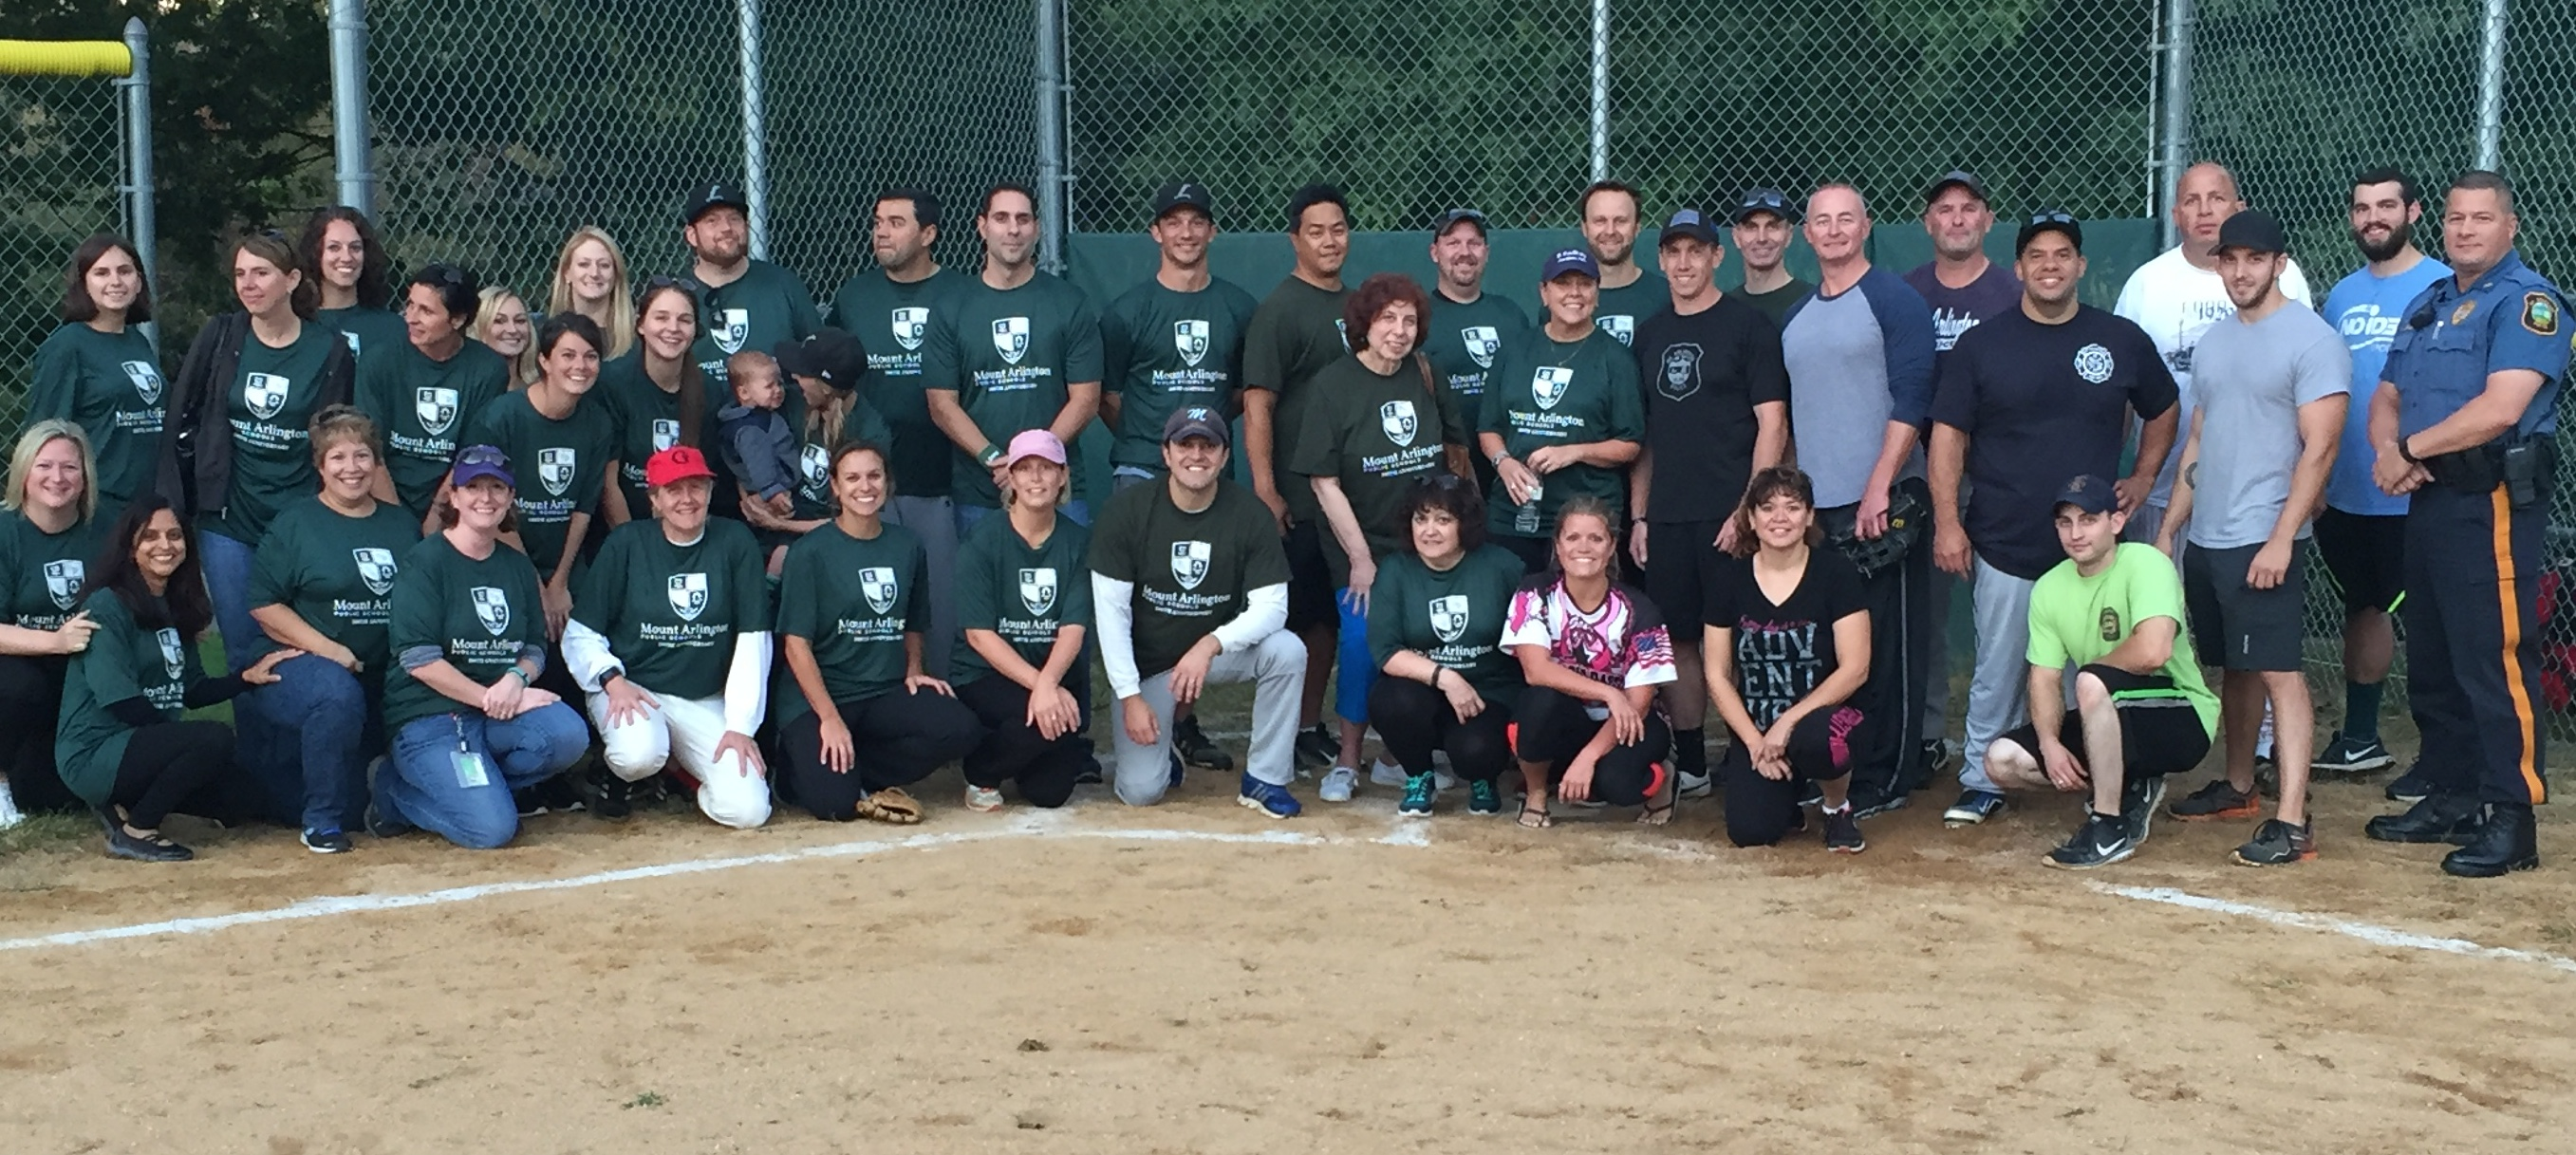 Community Softball Game